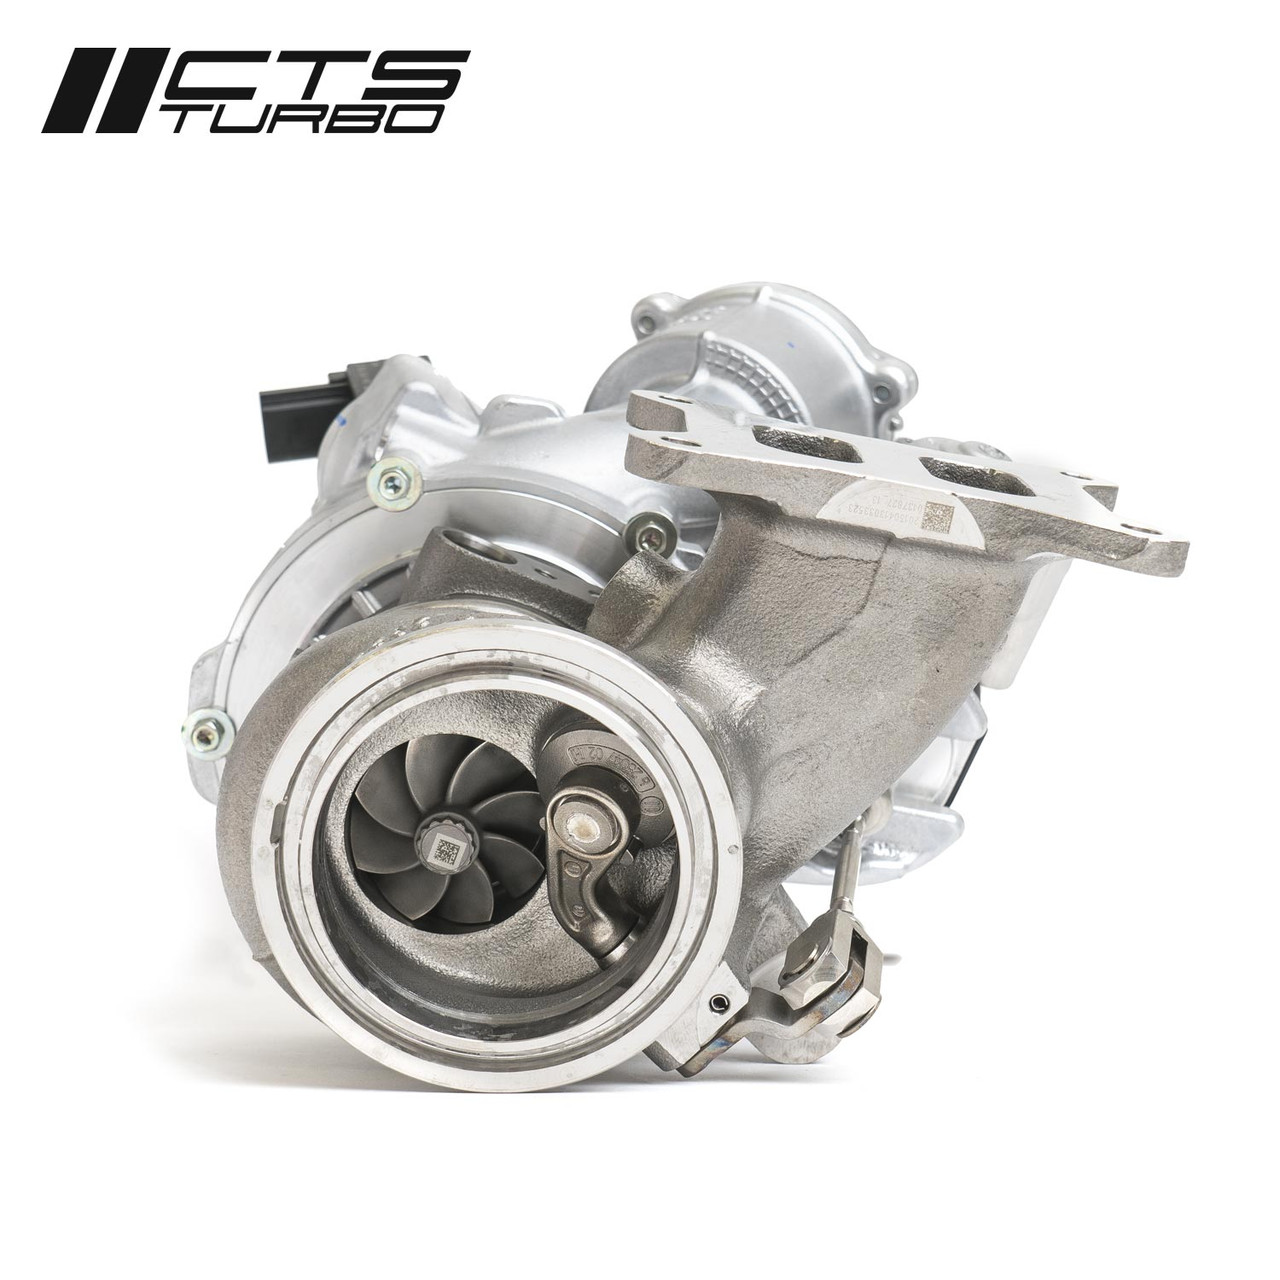 CTS Turbo IS38 Turbocharger for MQB Golf/GTI/Golf R, Audi A3/S3 (2015+)